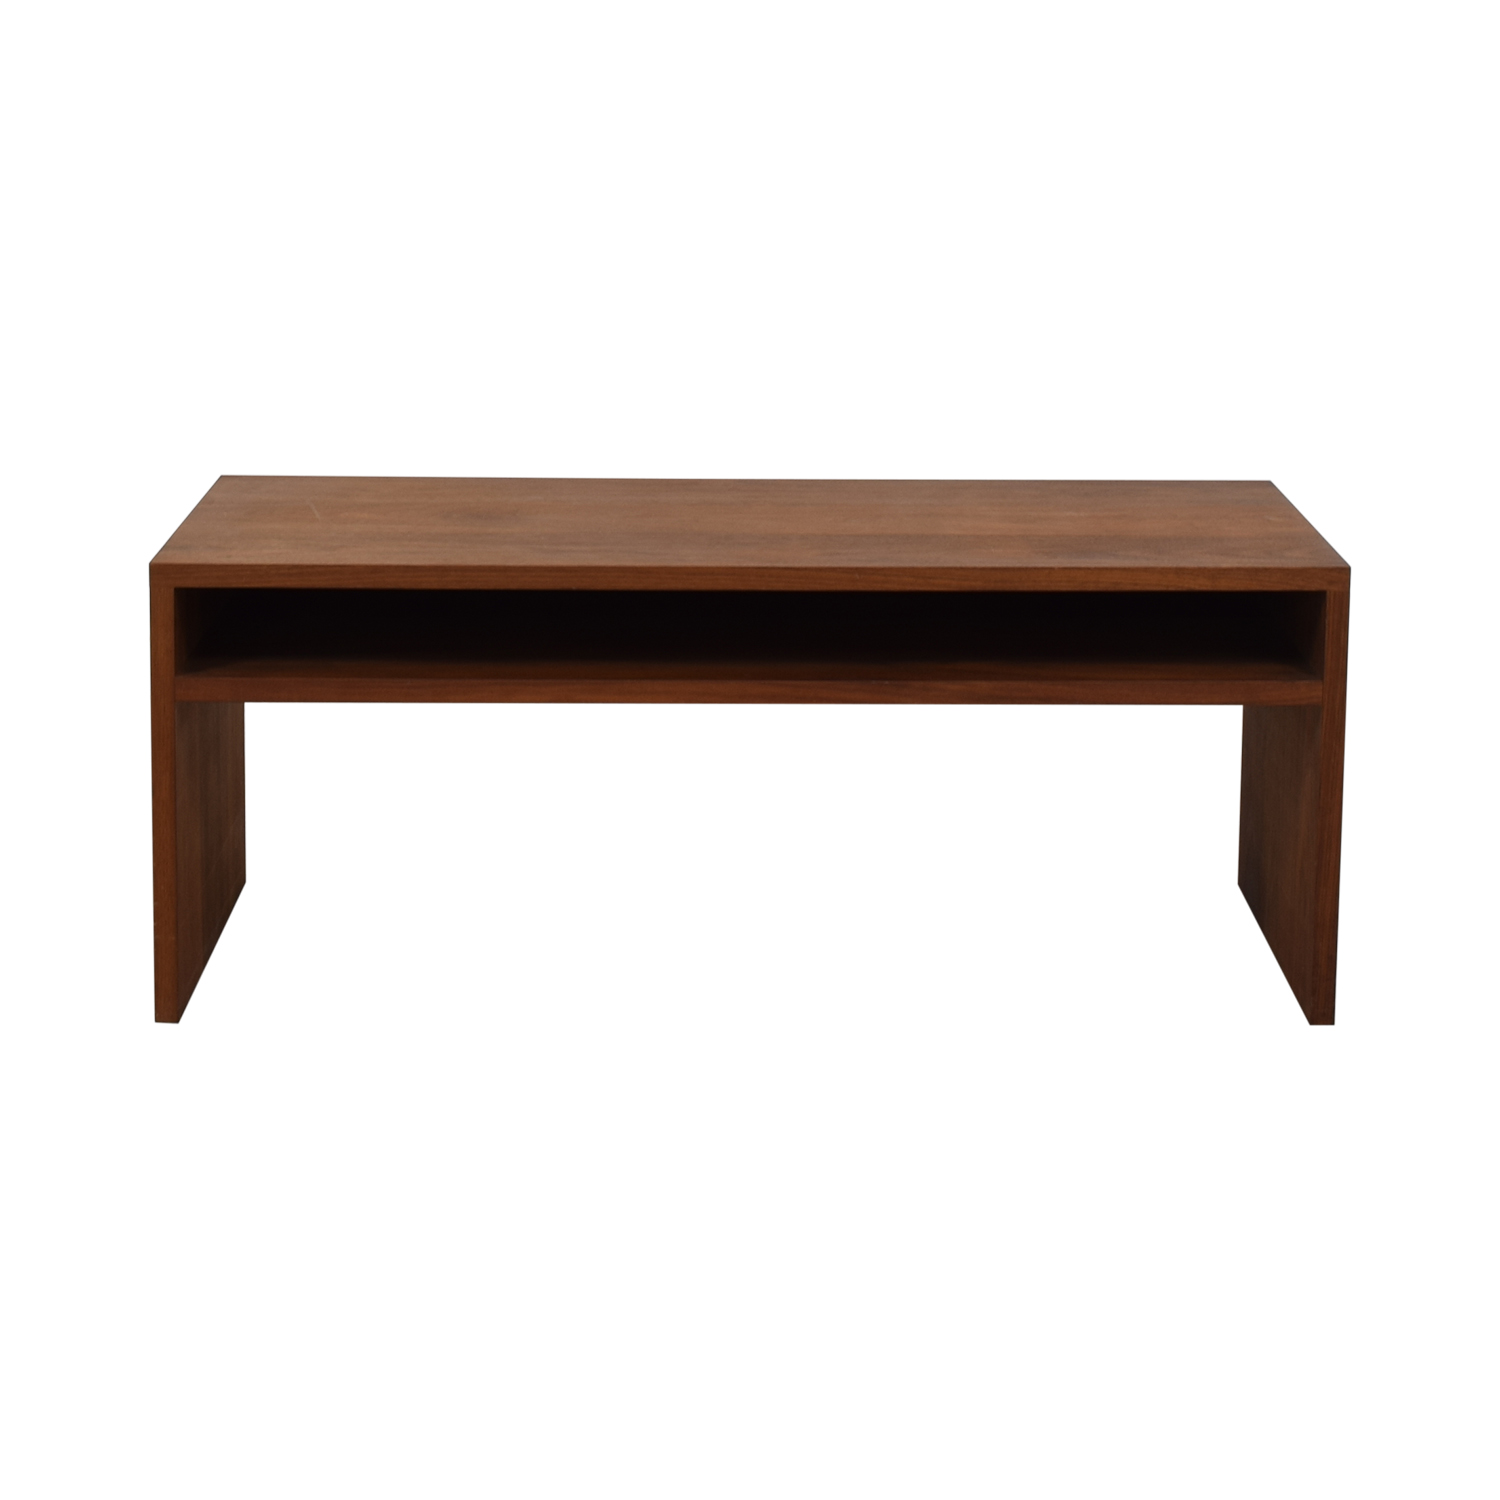 buy  Custom Solid Walnut Coffee Table with Enclosed Shelf Space online